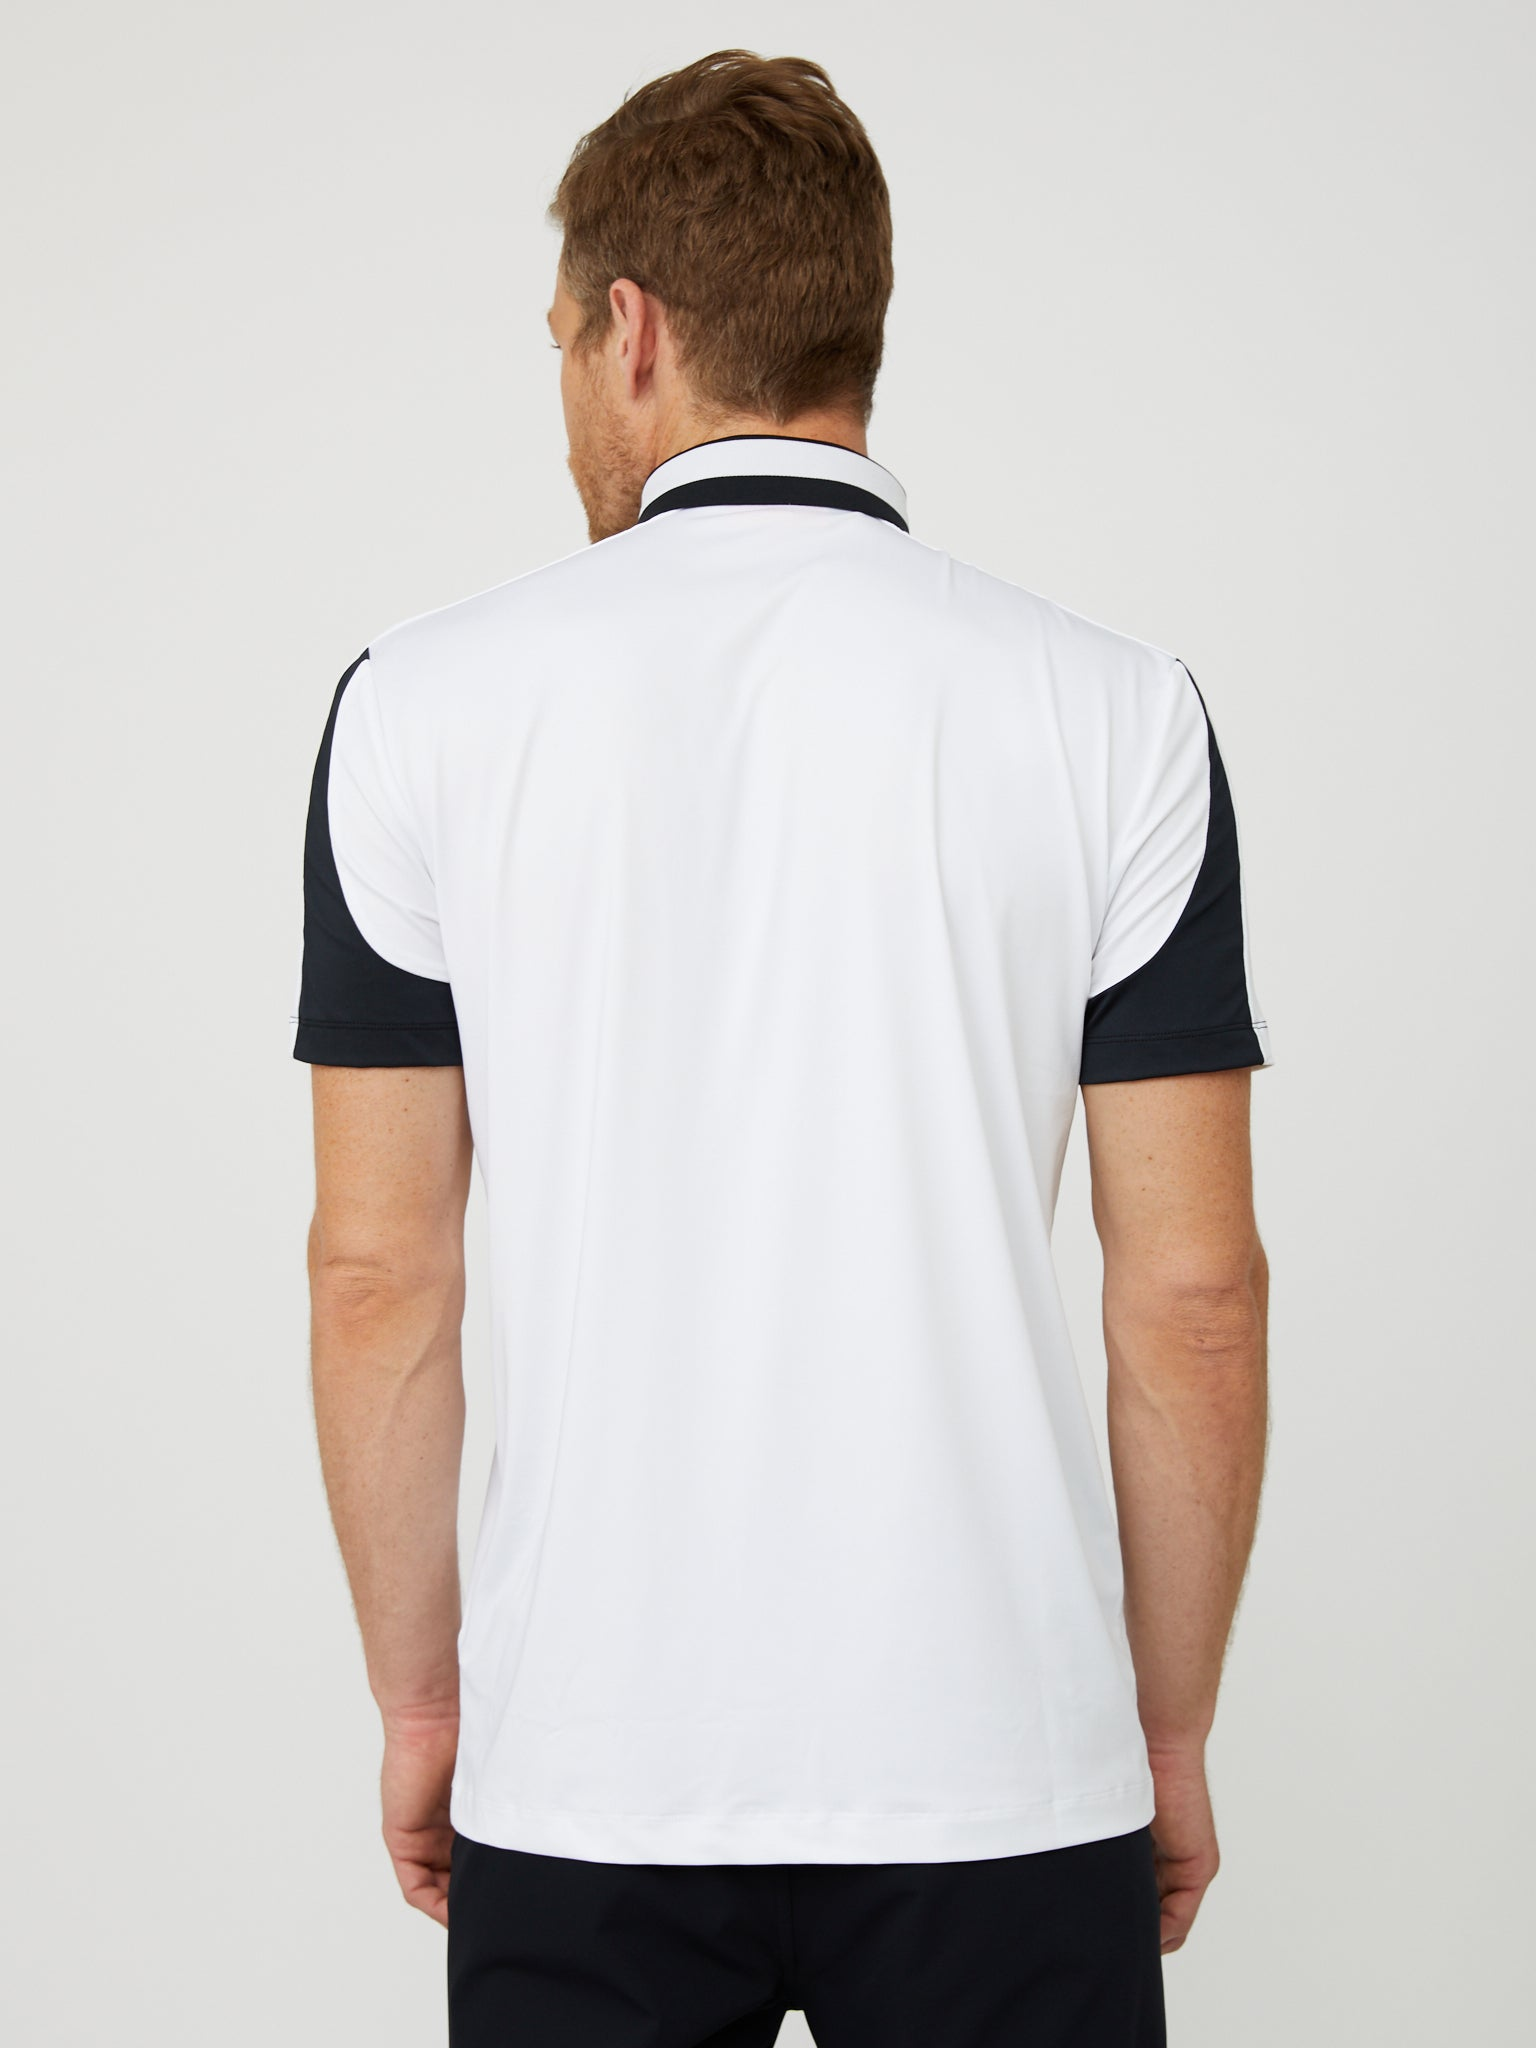 Madison Polo in White/Black